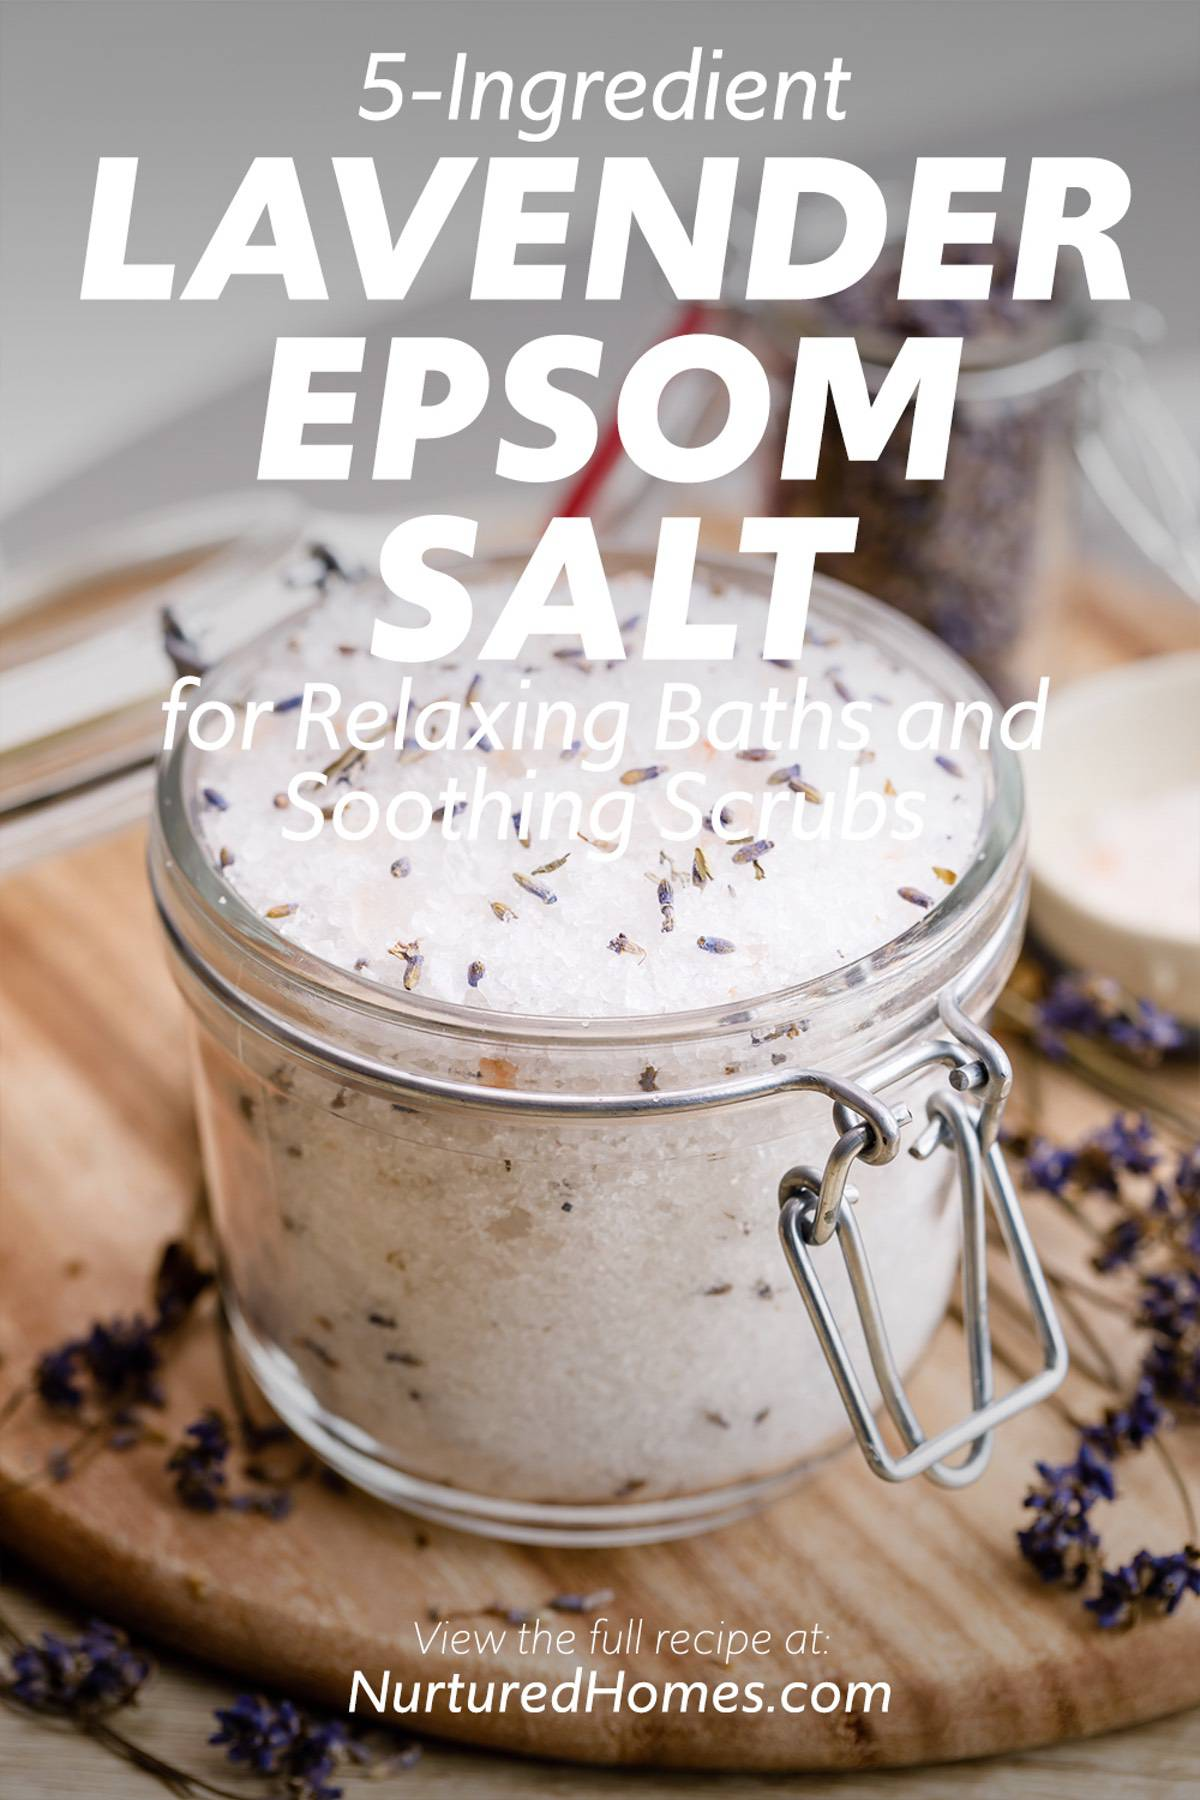 5-Ingredient Lavender Epsom Salt for Relaxing Baths and Soothing Scrubs